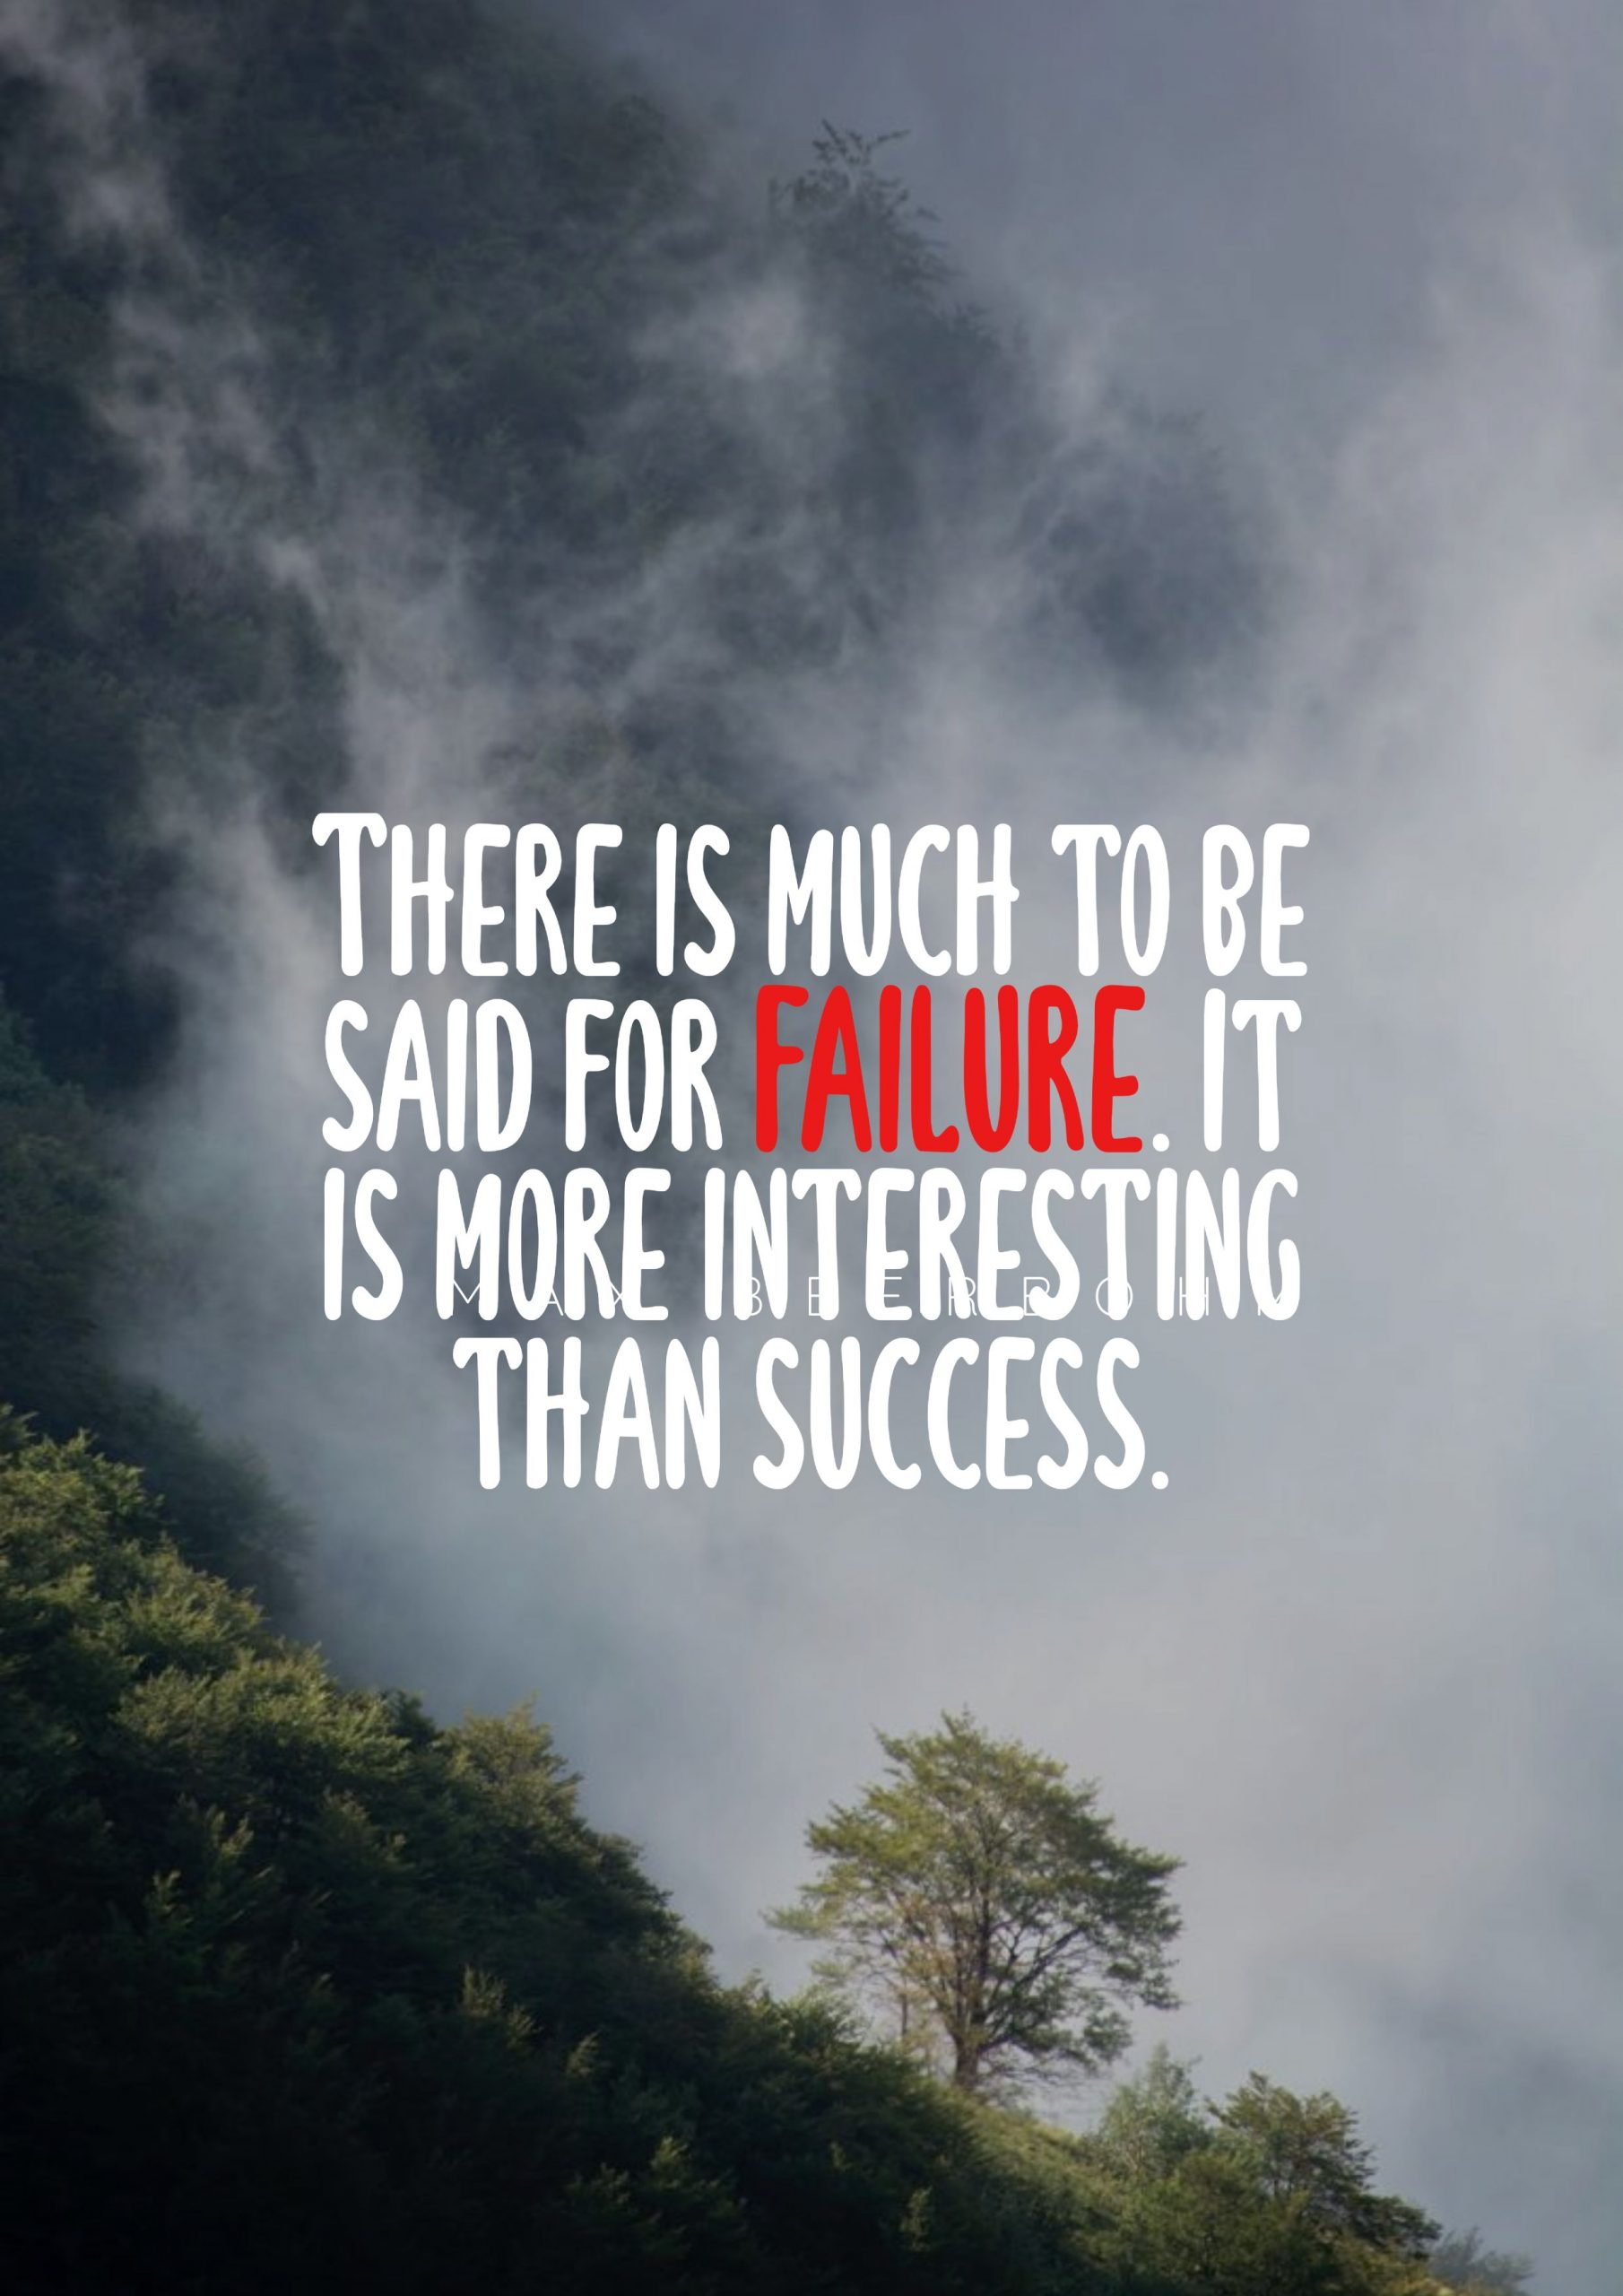 Quotes image of There is much to be said for failure. It is more interesting than success.